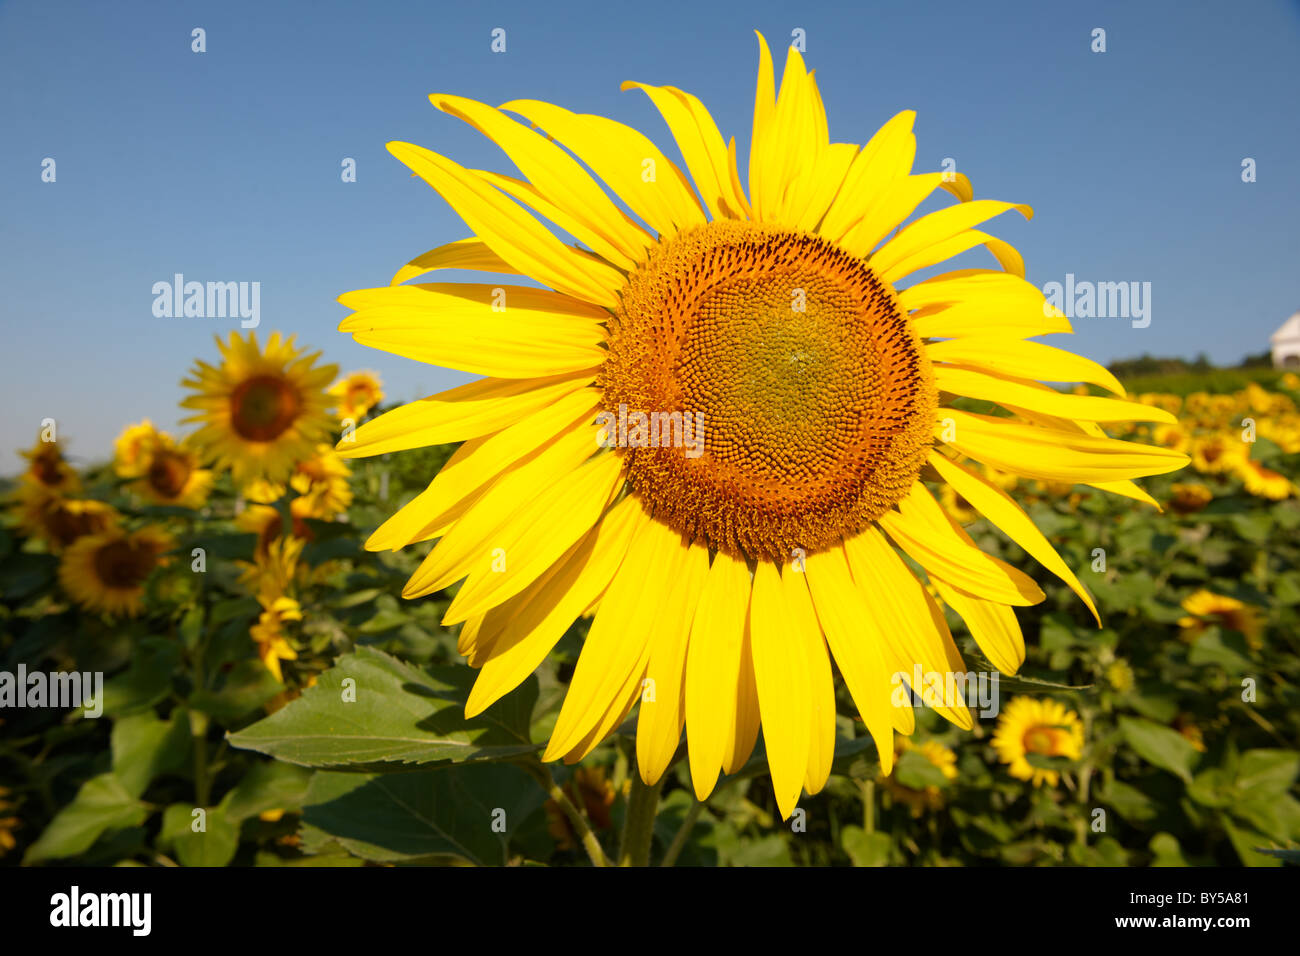 Field of Sunflower flowering heads - Stock Image